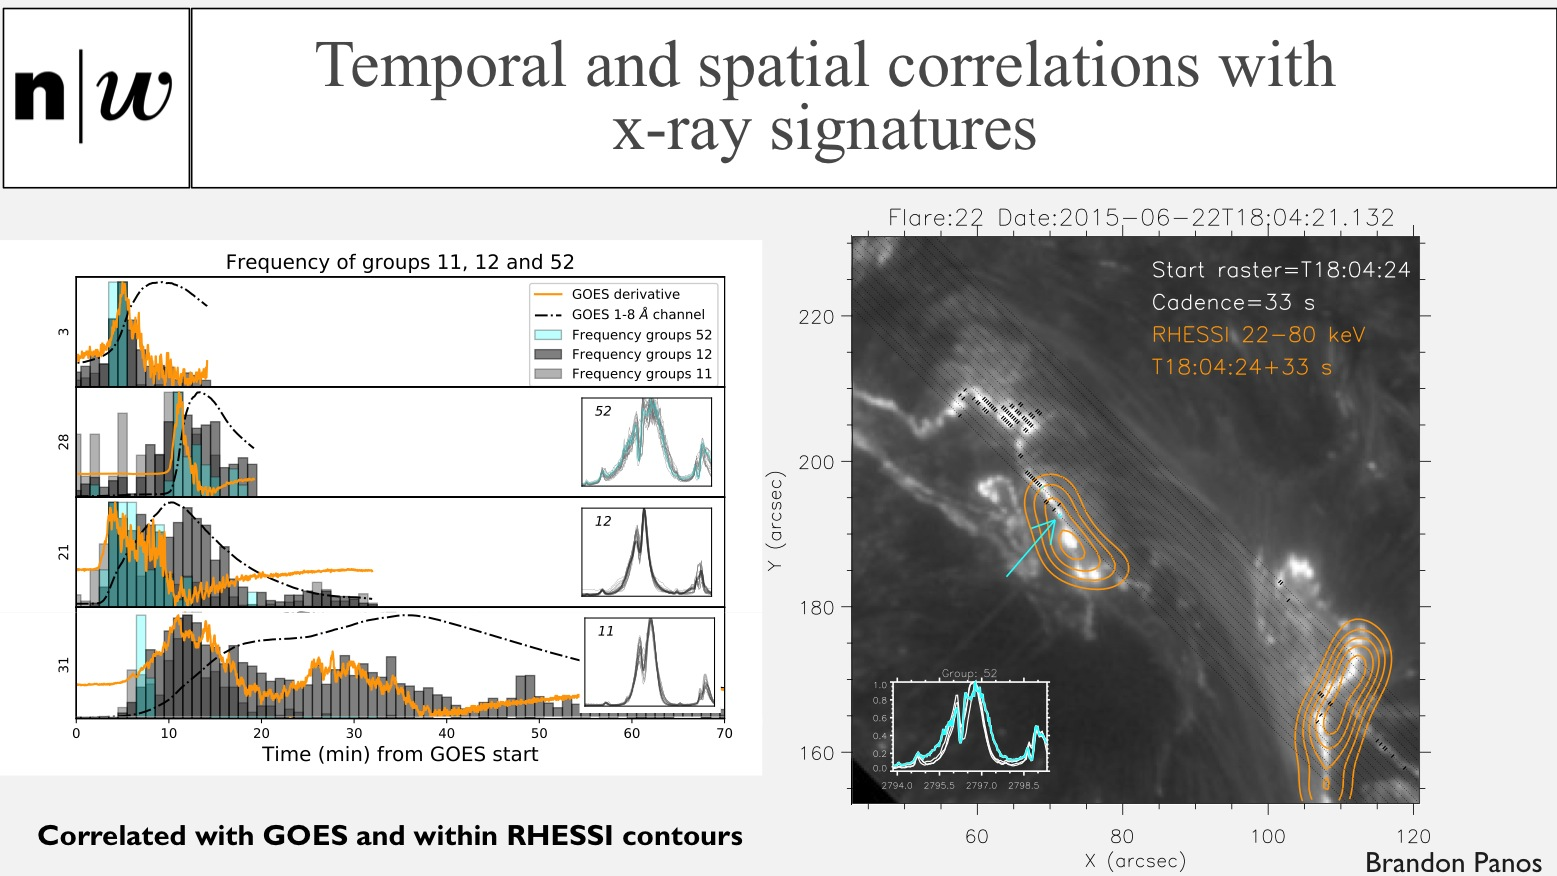 Temporal and spatial correlations with x-ray signatures: Correlated with GOES and within RHESSI contours